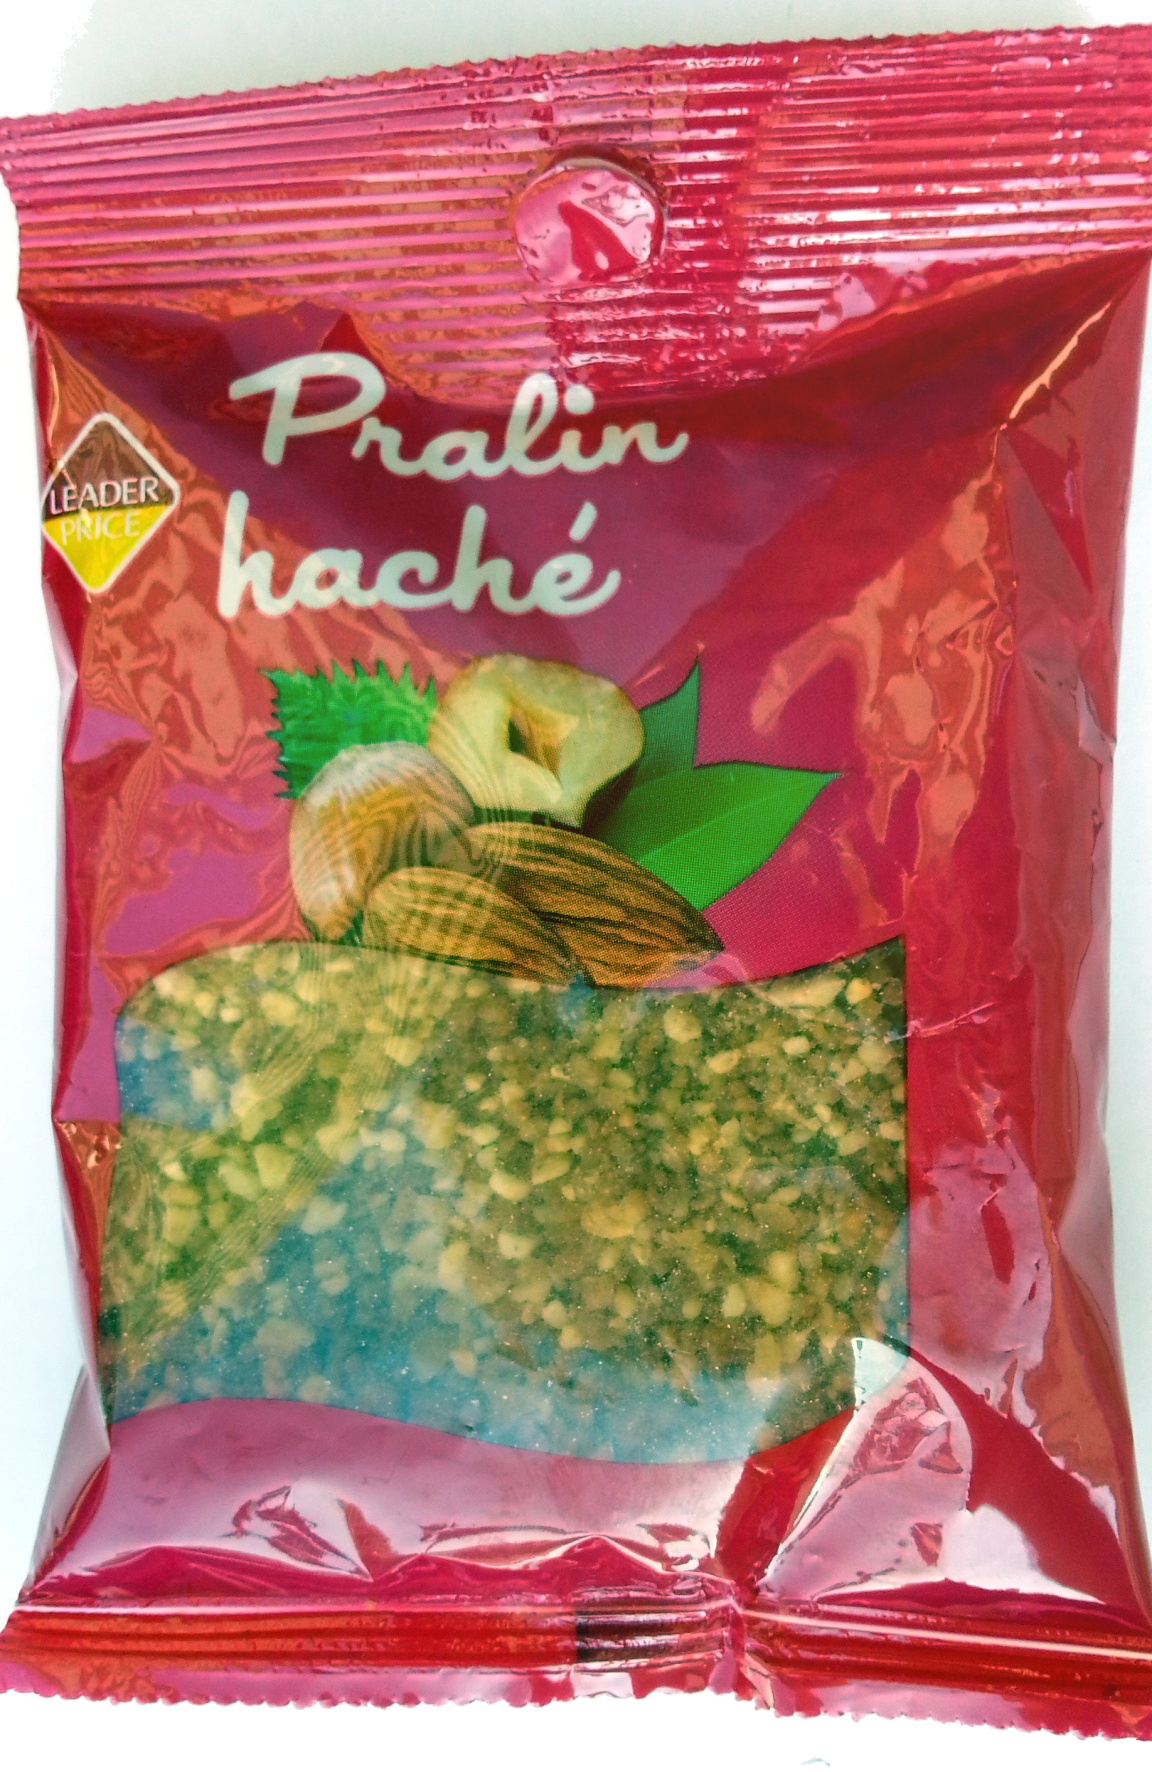 Pralin haché - Product